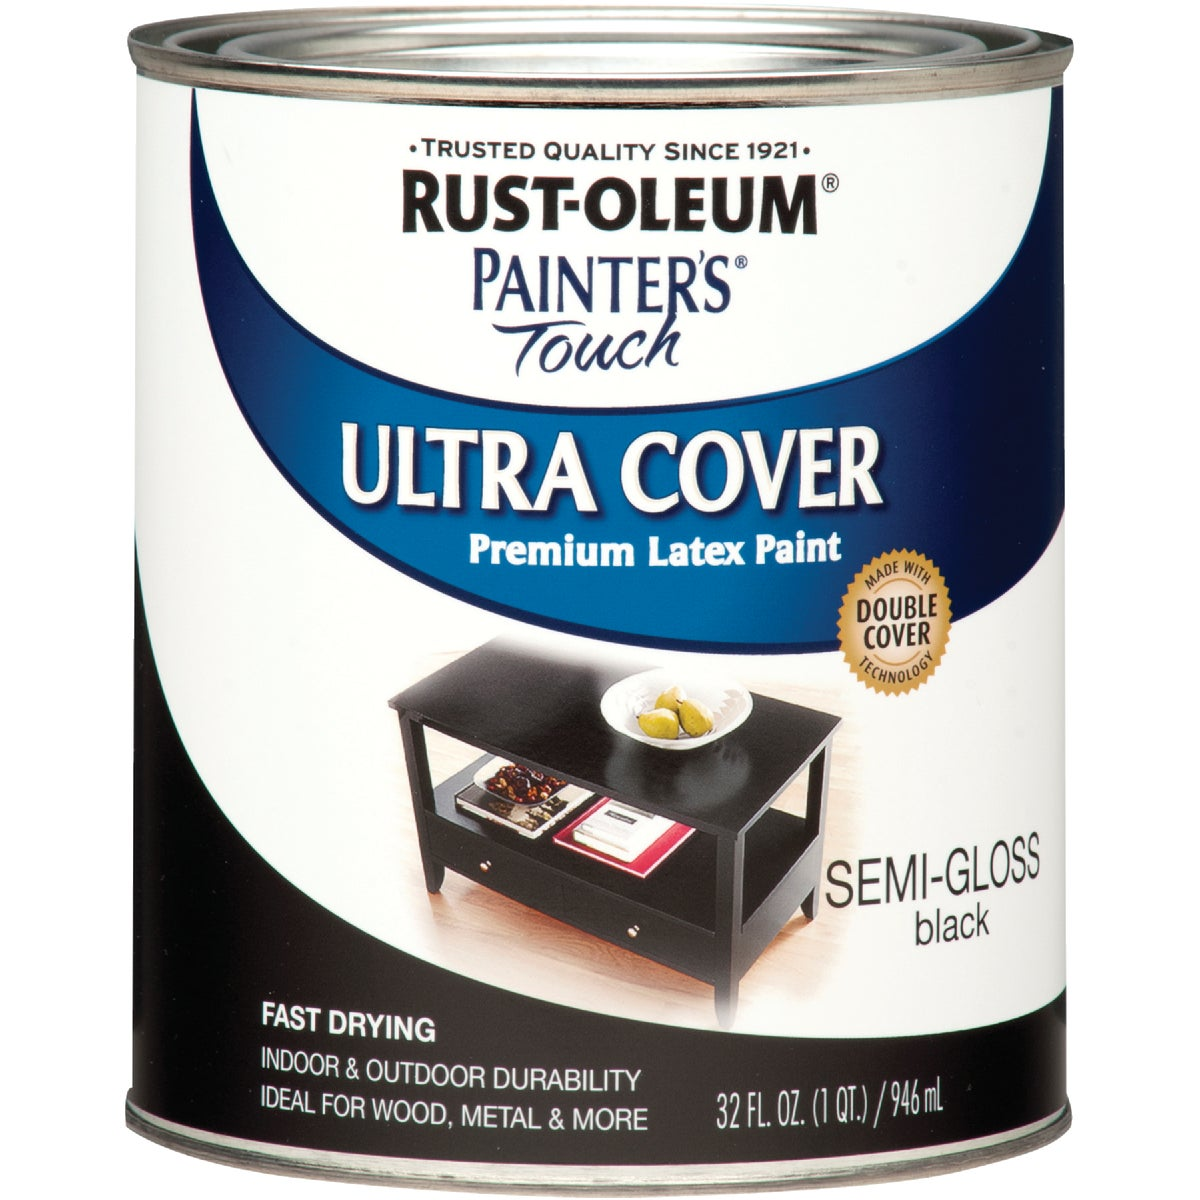 S/G BLACK LATEX PAINT - 1974-502 by Rustoleum